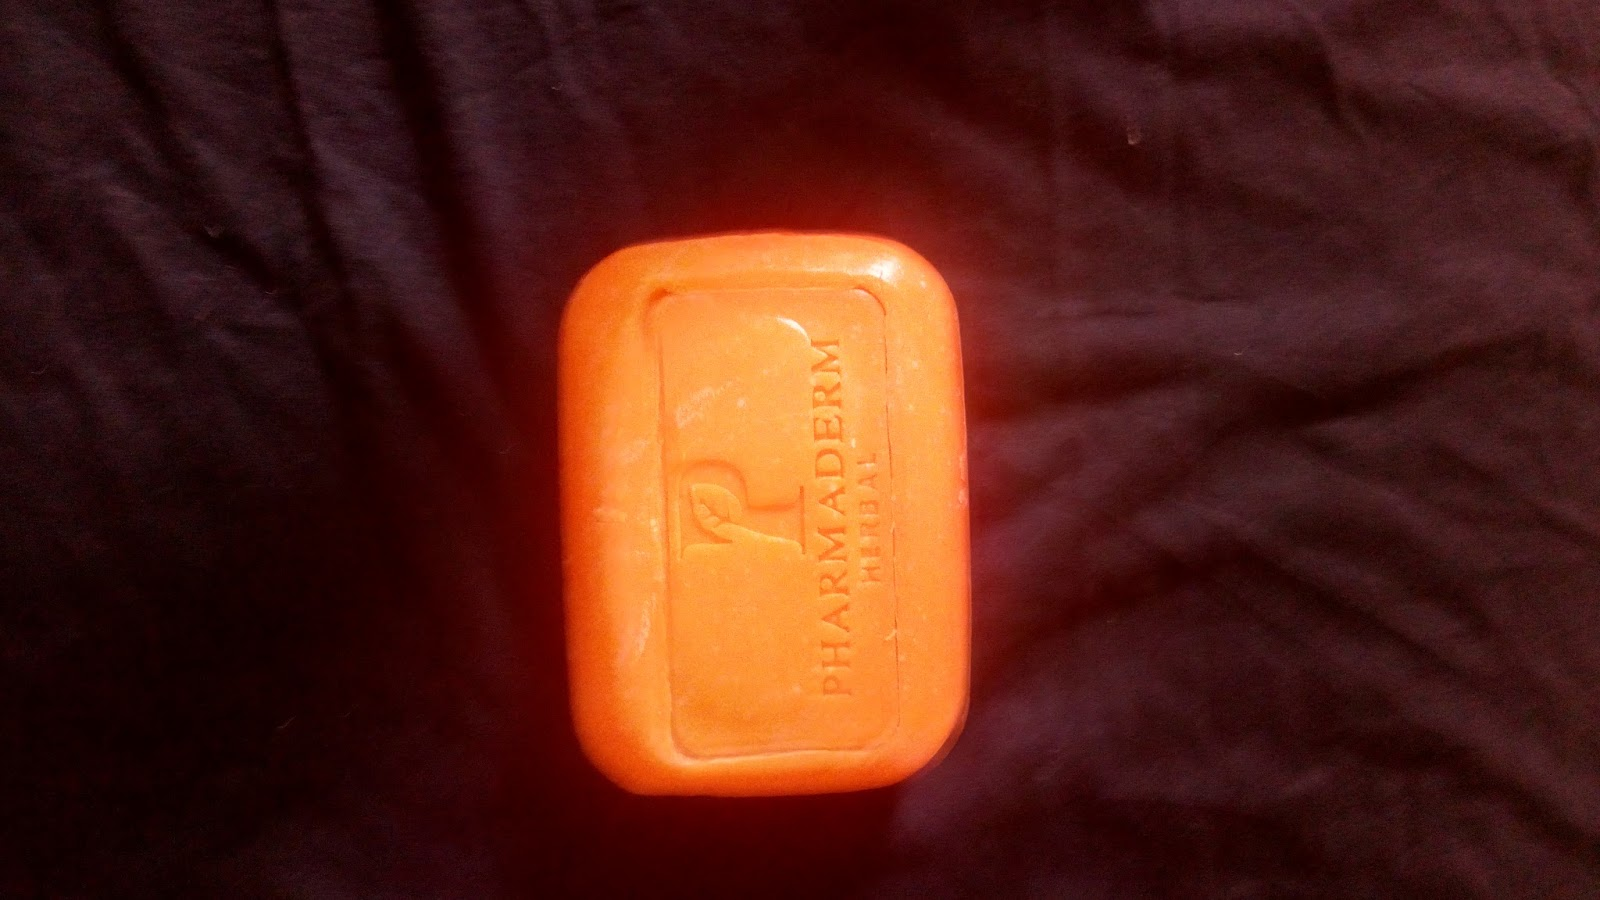 pharmaderm antiseptic soap, pharmaderm apricot soap, pharmaderm care soap, pharmaderm cream and soap, pharmaderm exfoliating beauty soap, pharmaderm herbal family soap, pharmaderm herbal soap, pharmaderm soap, pharmaderm soap for acne, pharmaderm soap for pimples, pharmaderm soap reviews